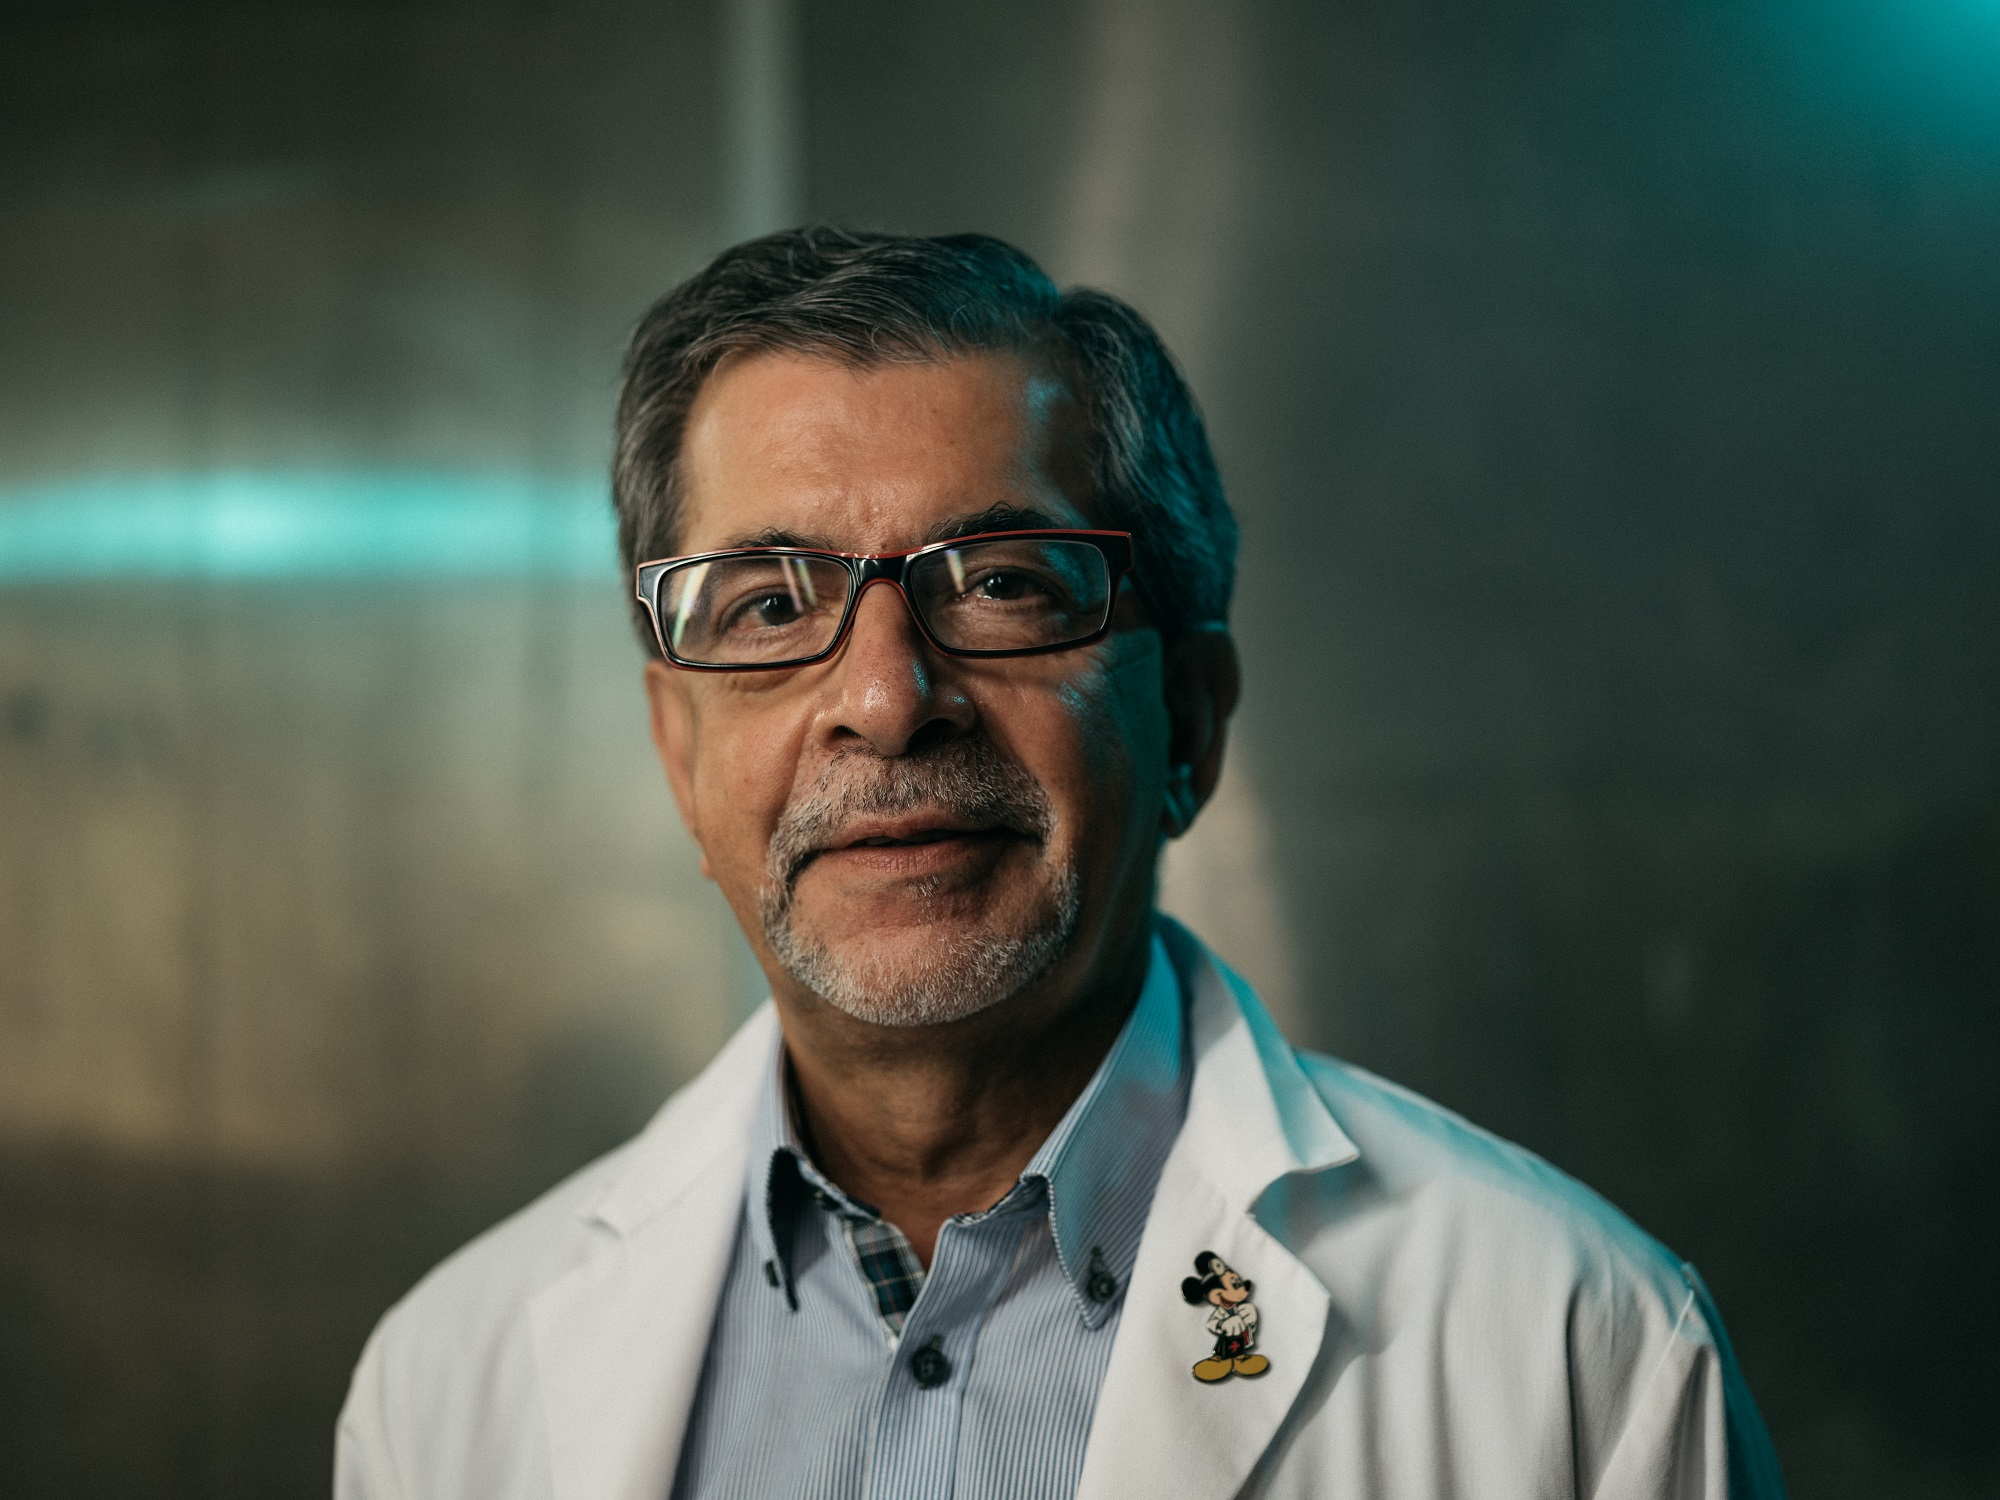 Dr. Jack Jhamandas, Neurologist and Researcher, Alzheimer's